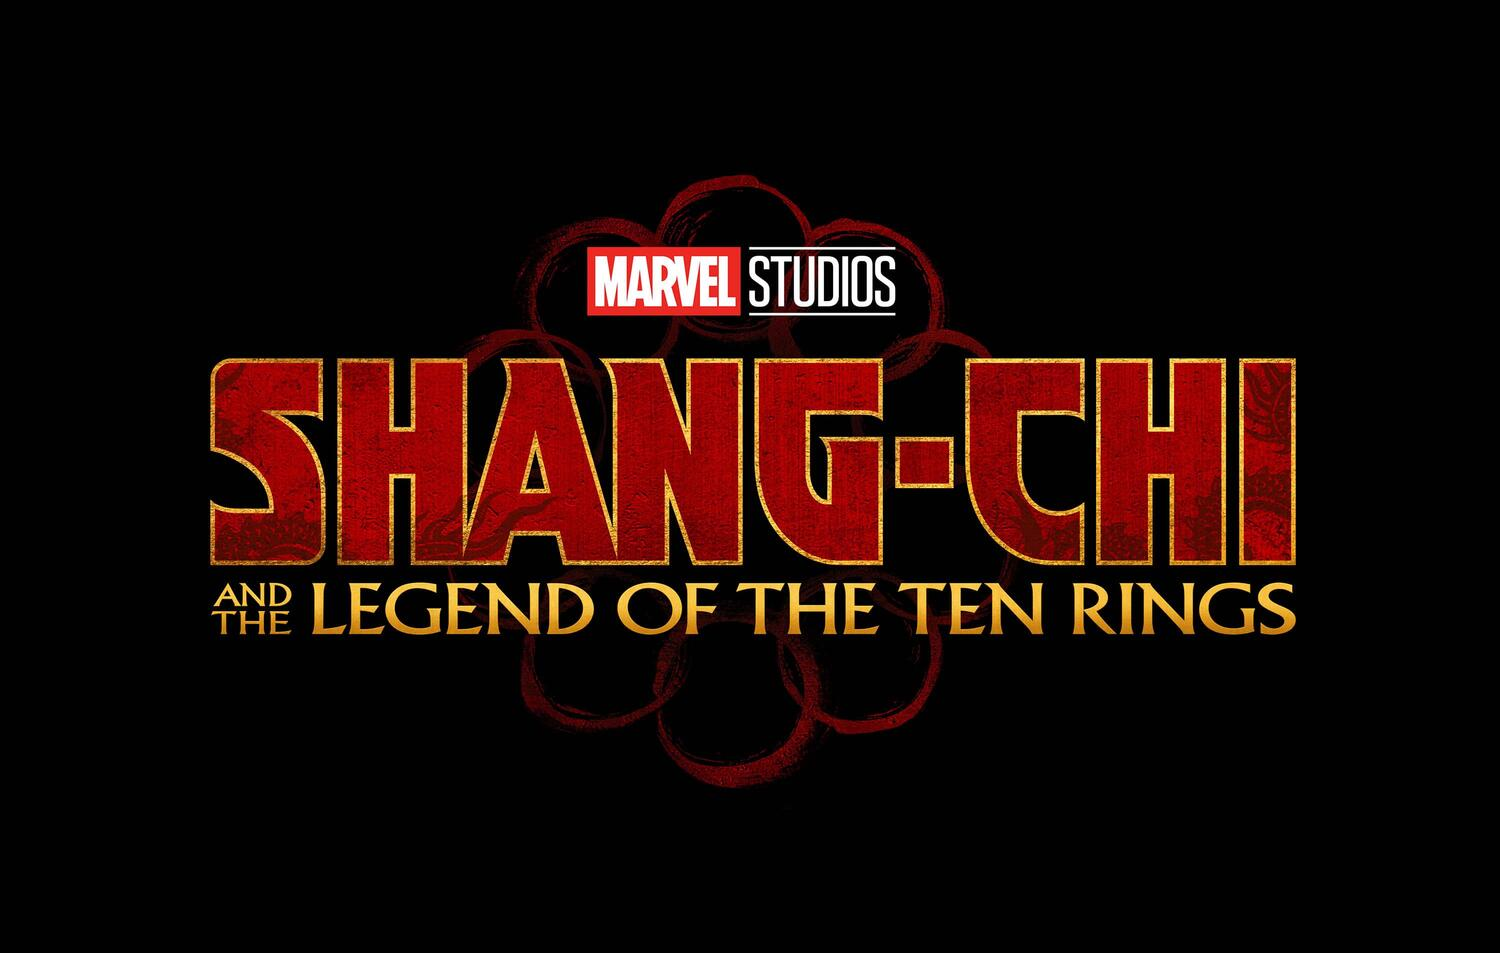 Shang-Chi and the Legend of the Ten Rings movie banner